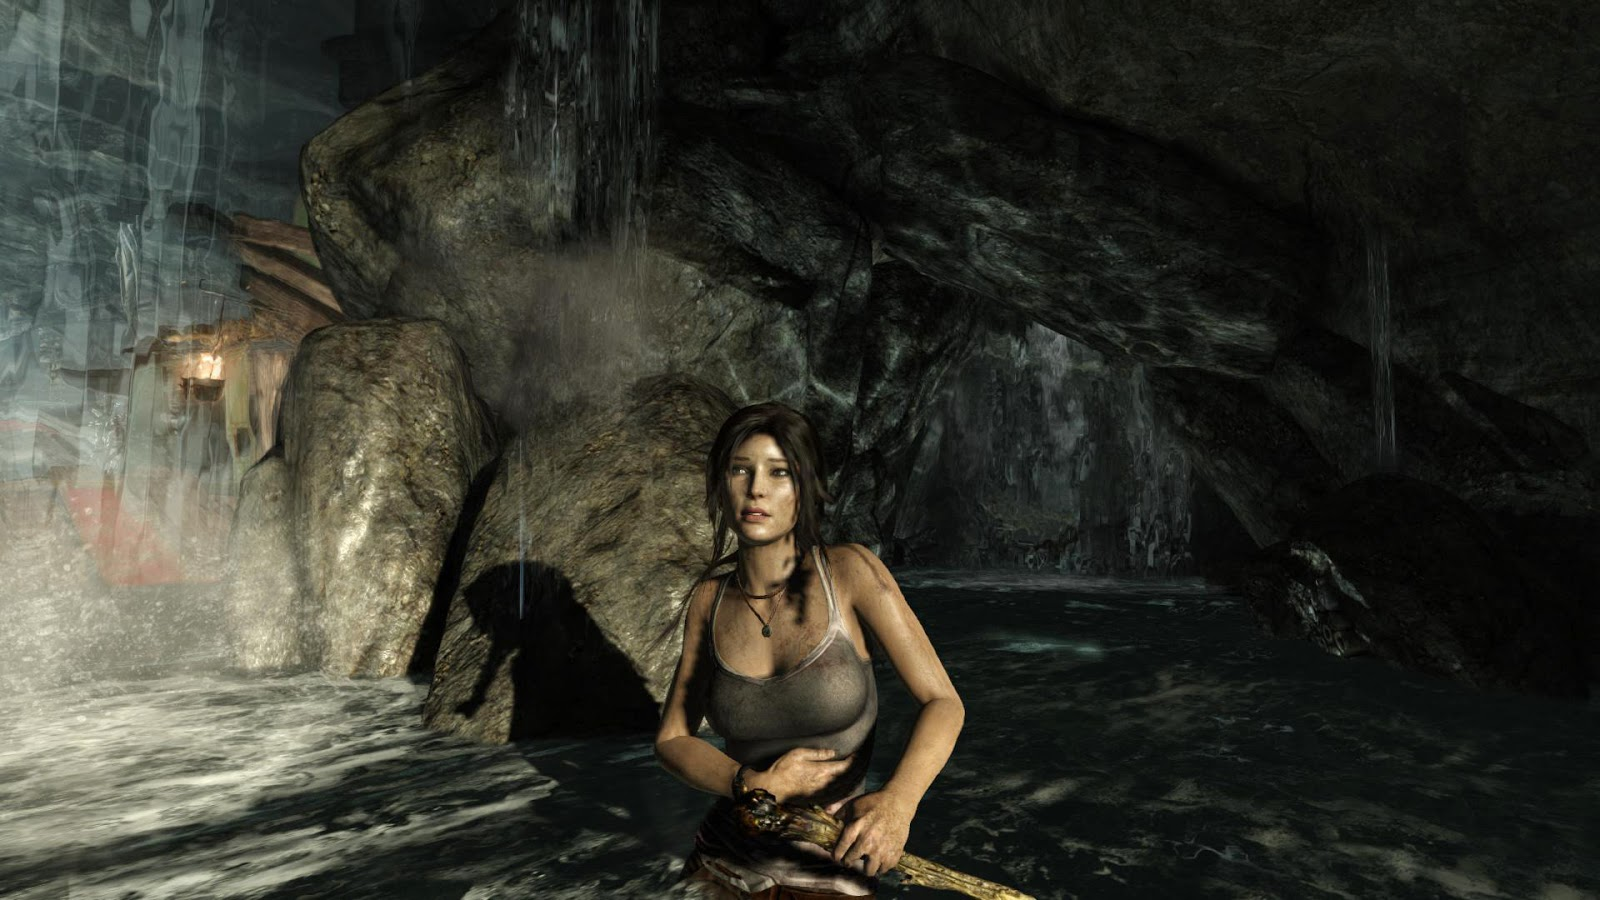 Steam tombraider legend nude mods erotica download